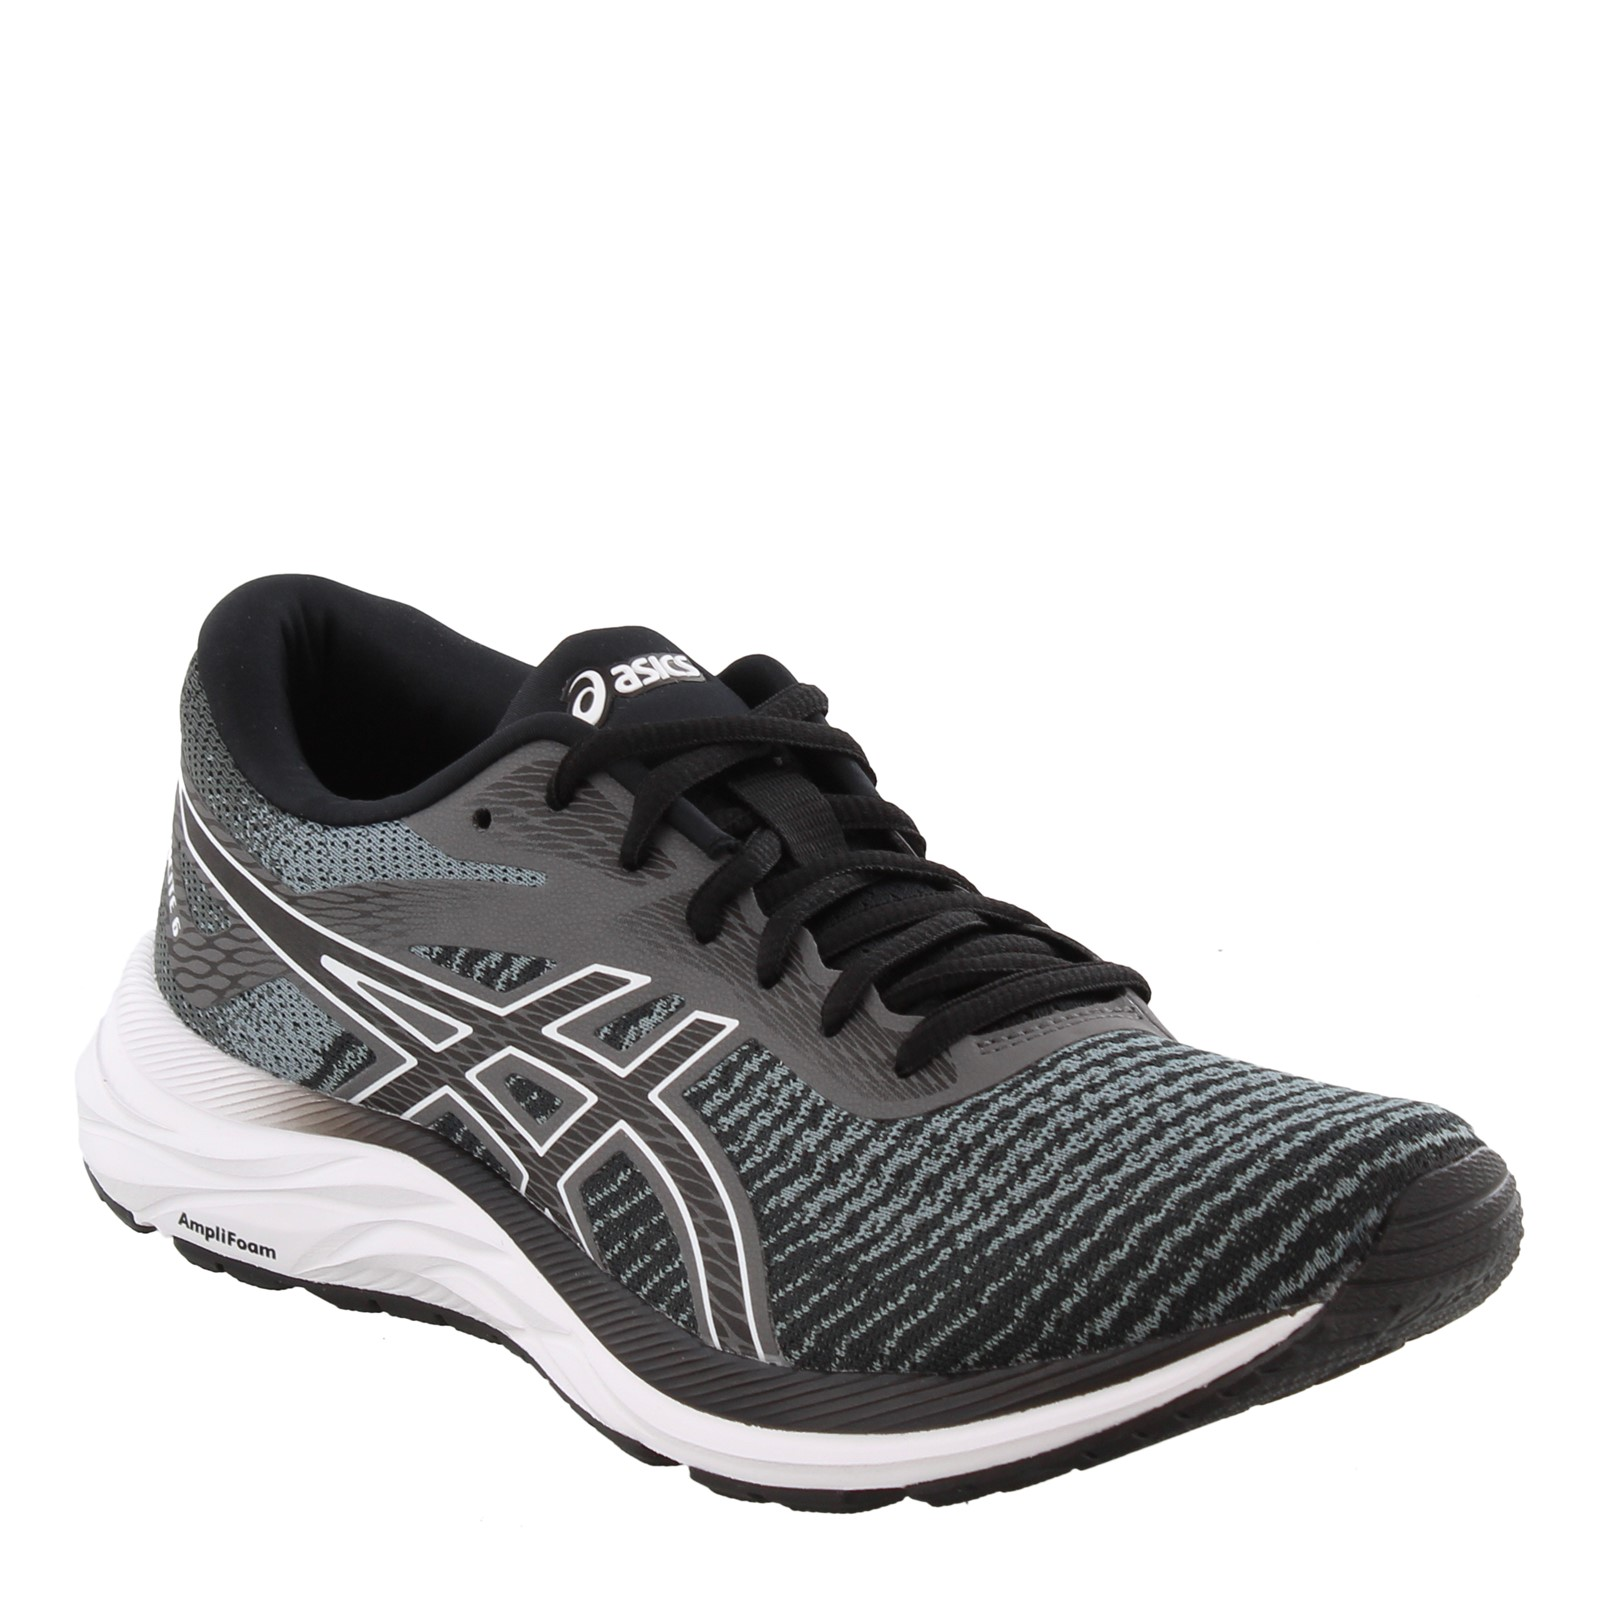 Women's Asics, Gel Excite 6 Twist